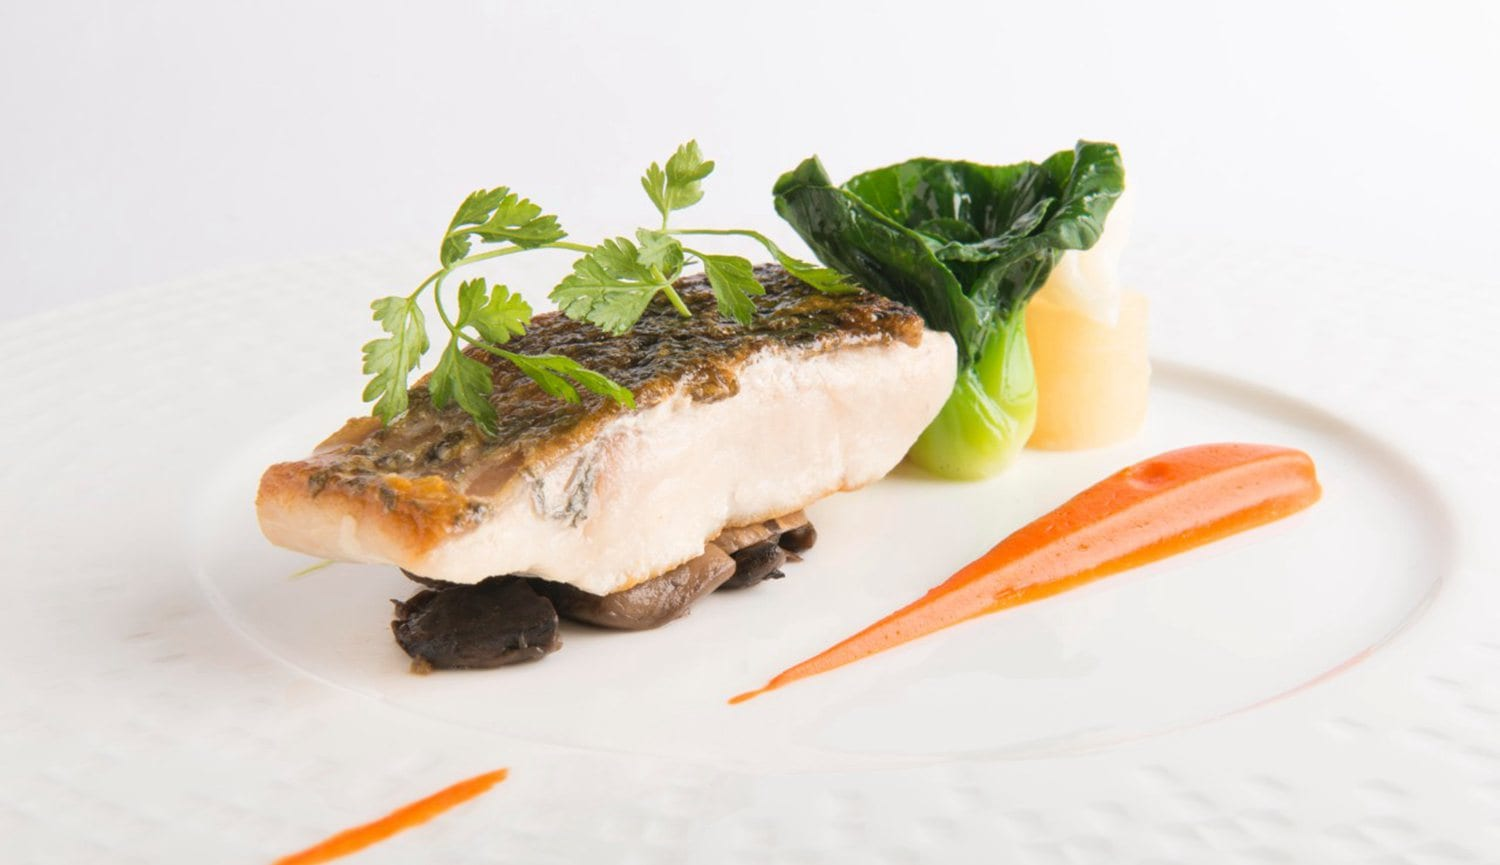 Harvest Menu Signature Dishes - Pan Seared Sea Bass Fillet